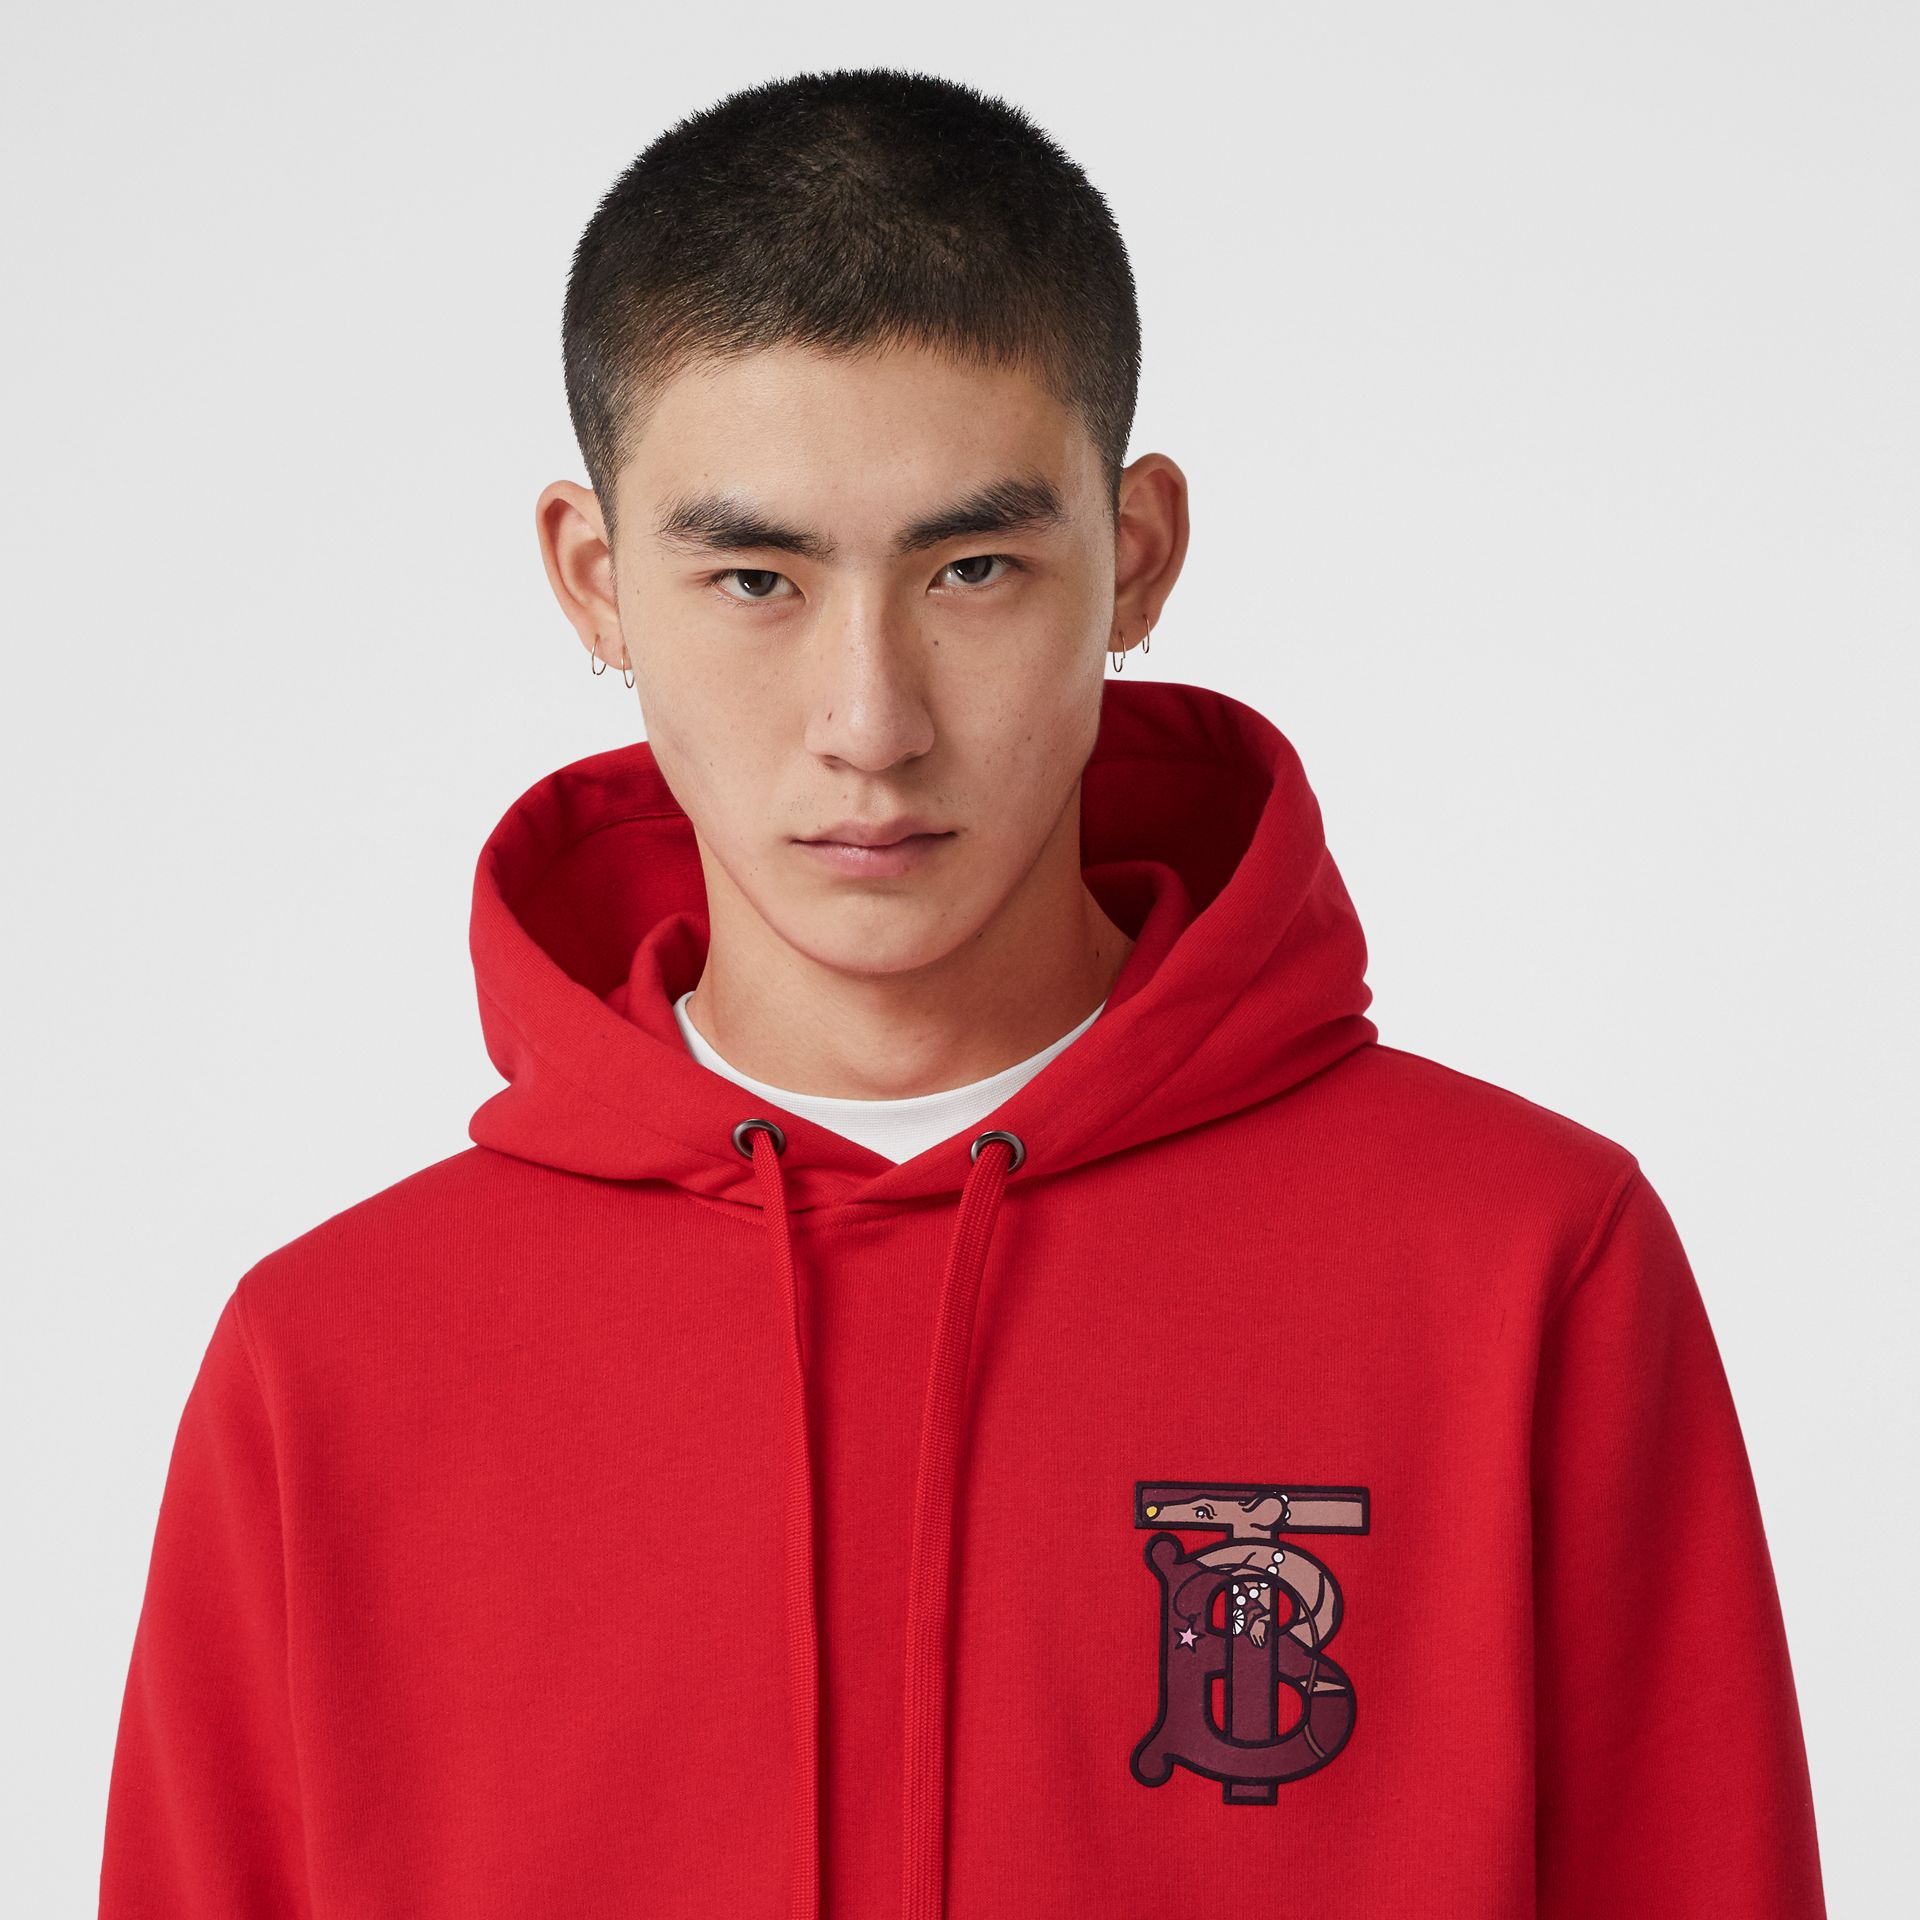 Monogram Motif Cotton Oversized Hoodie in Bright Red - Men | Burberry United Kingdom - gallery image 5